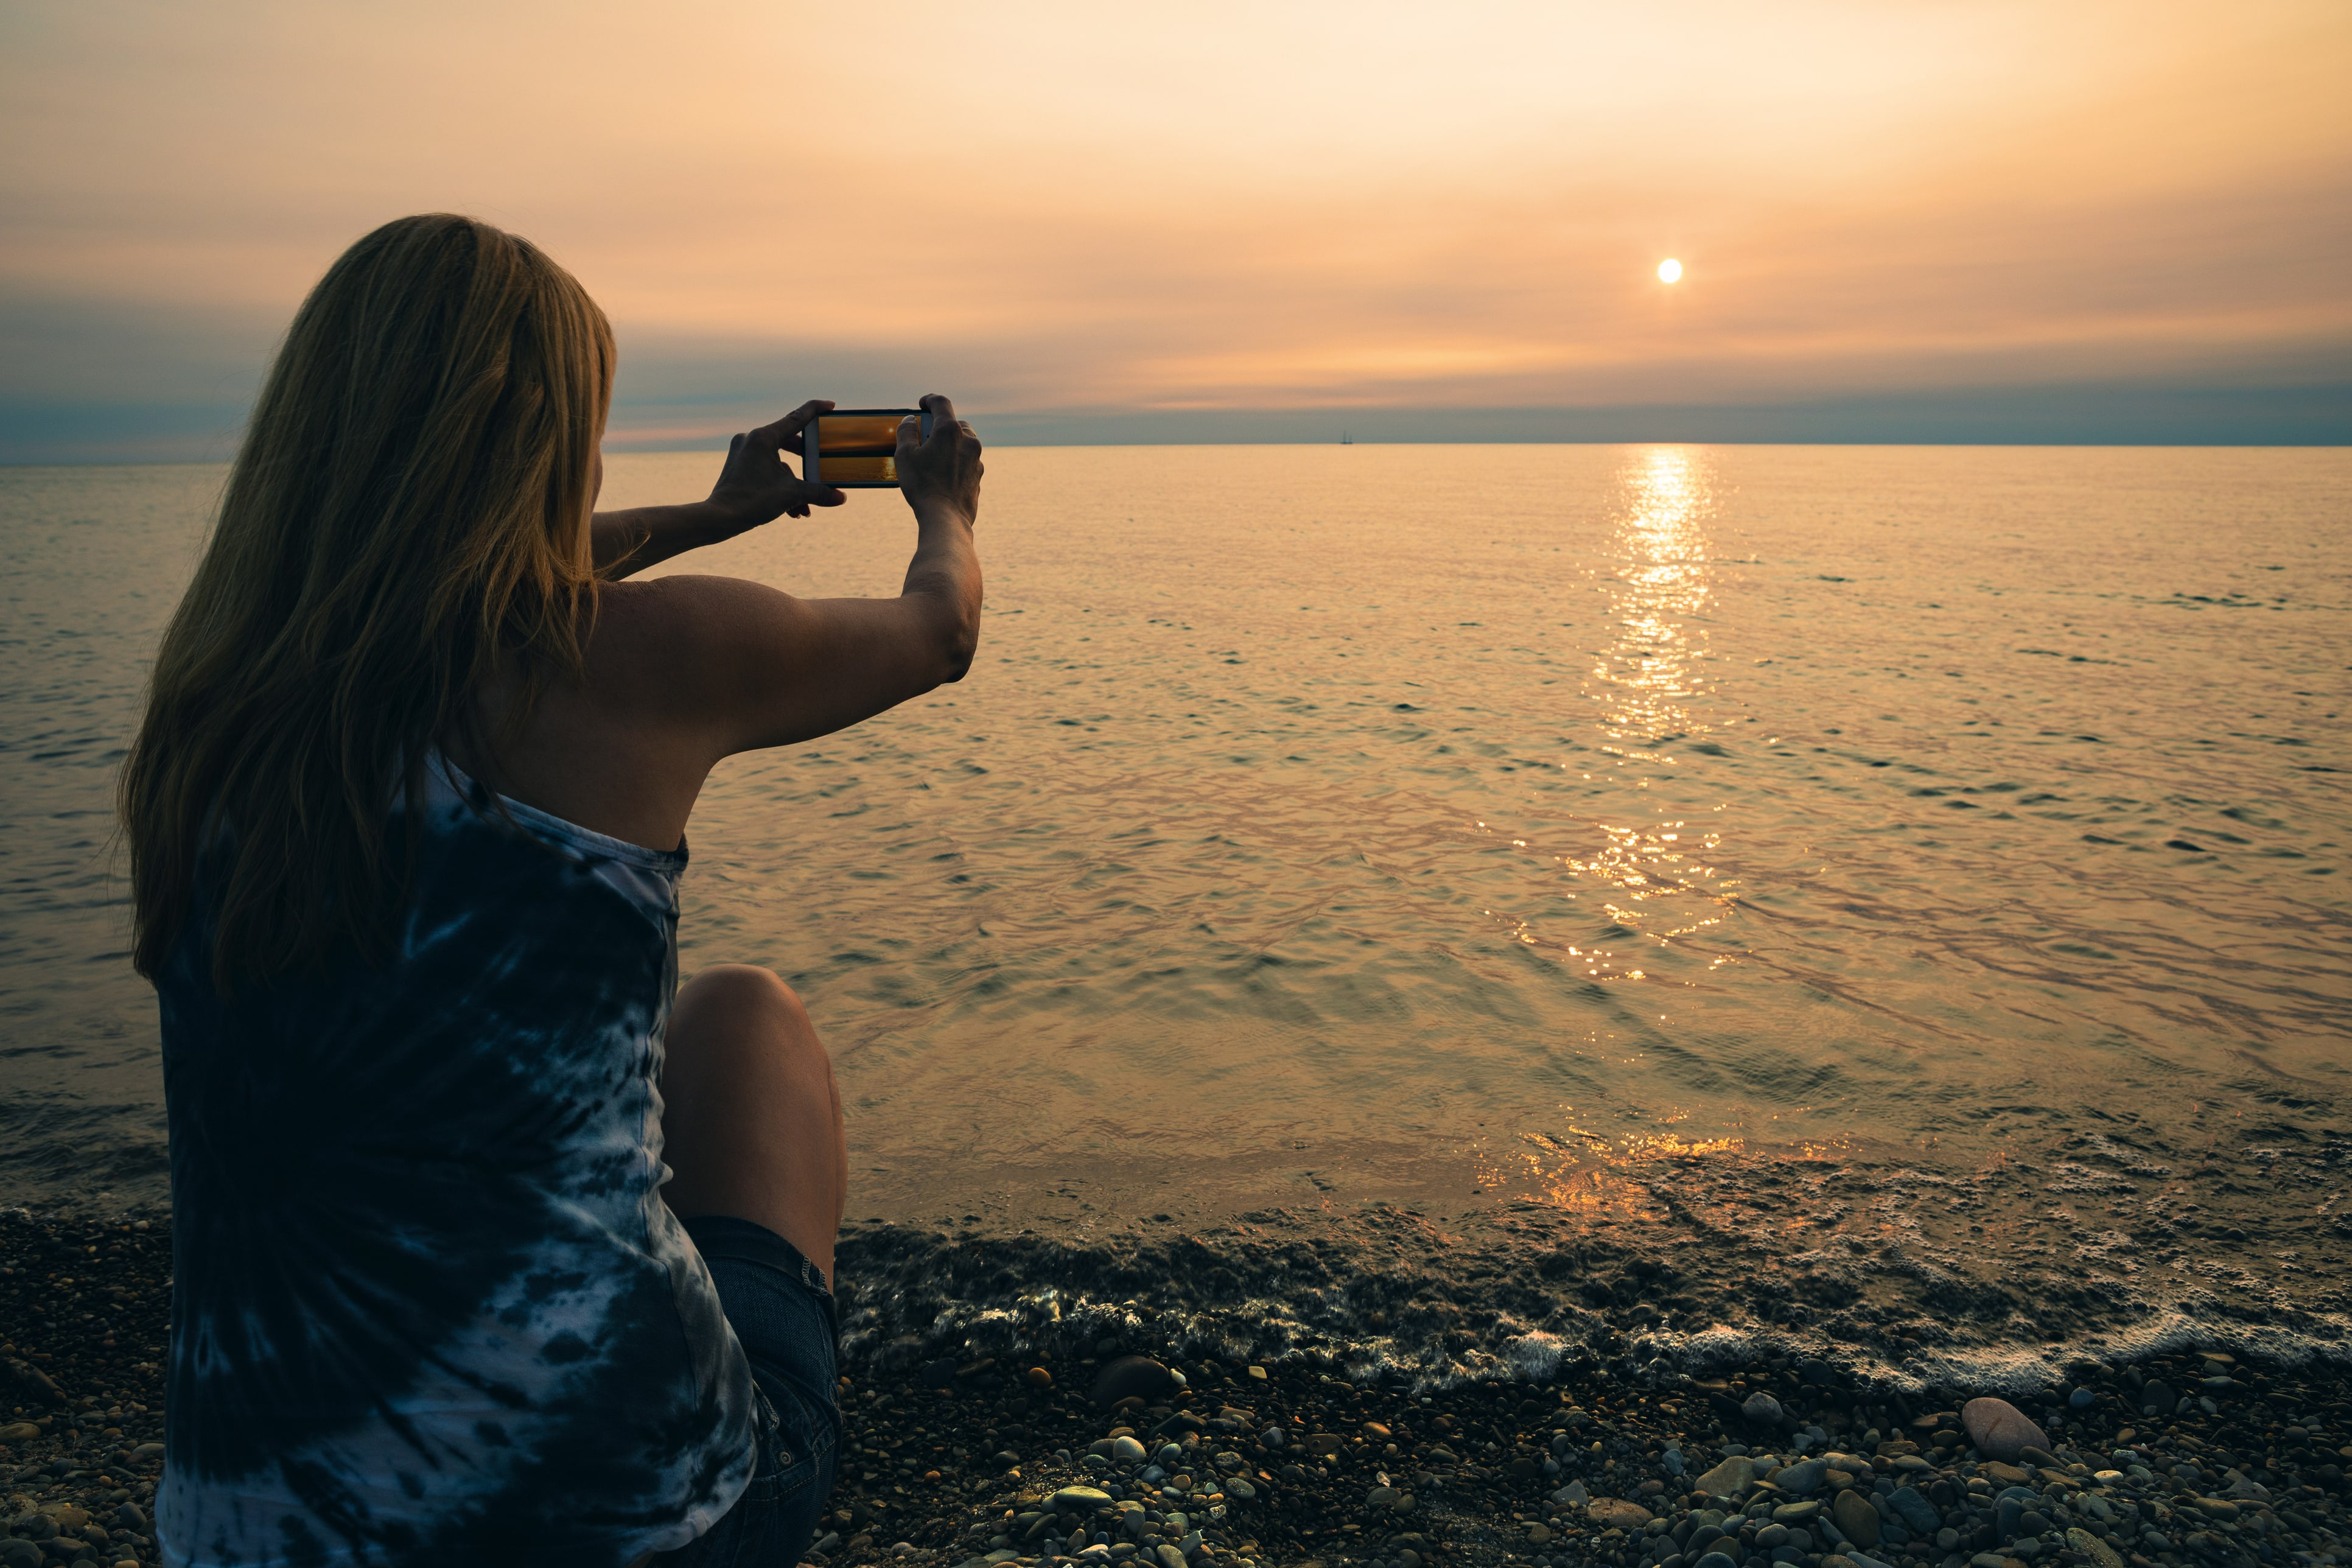 Woman on a beach taking a photo of the sunset